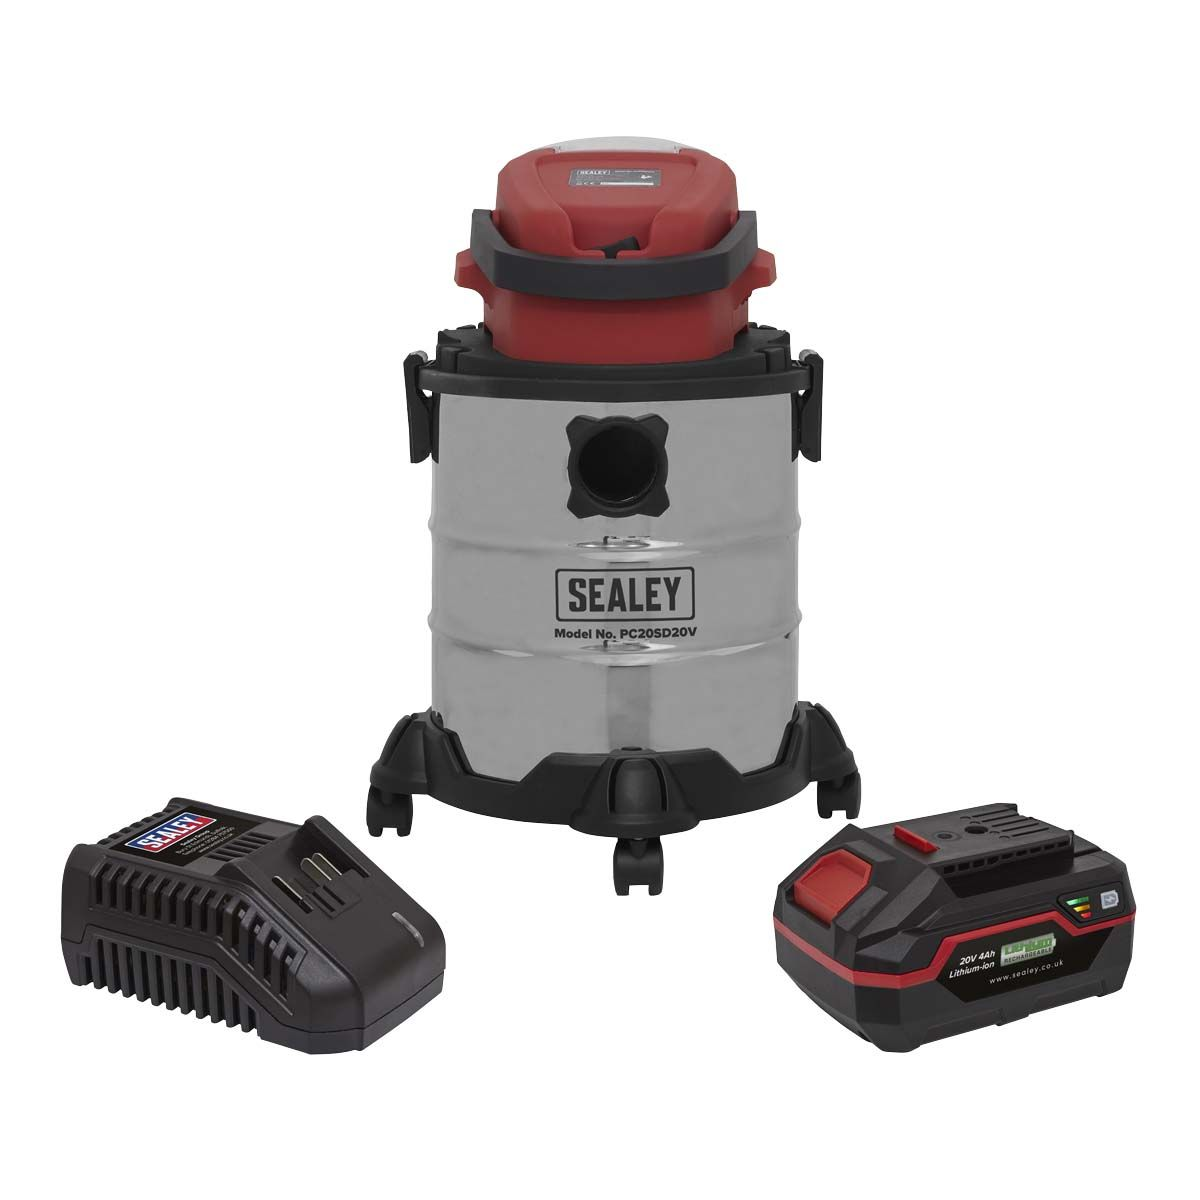 Sealey Vacuum Cleaner 20L Wet & Dry Cordless 20V with 4Ah Battery & Charger